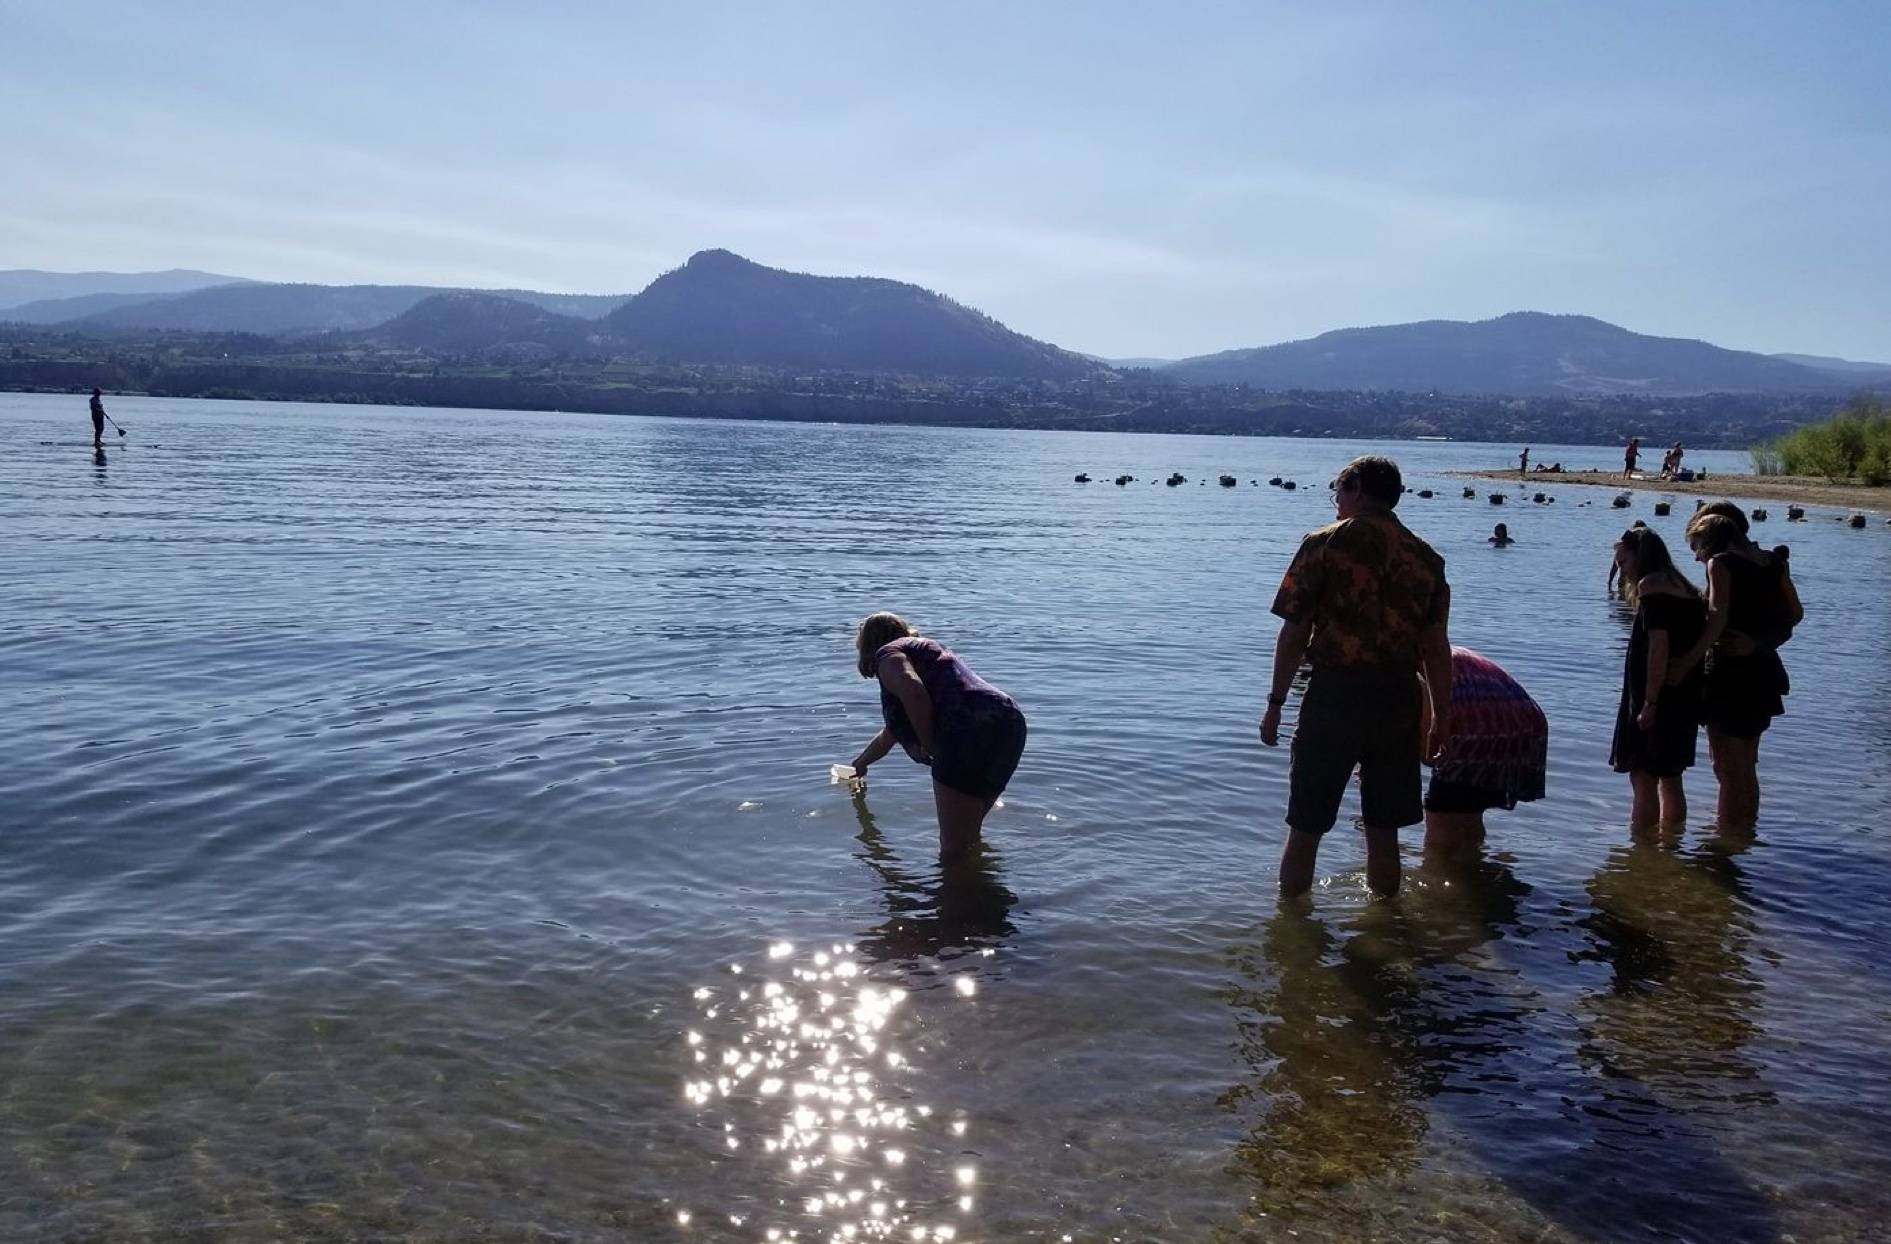 releasing the luminaries into the lake